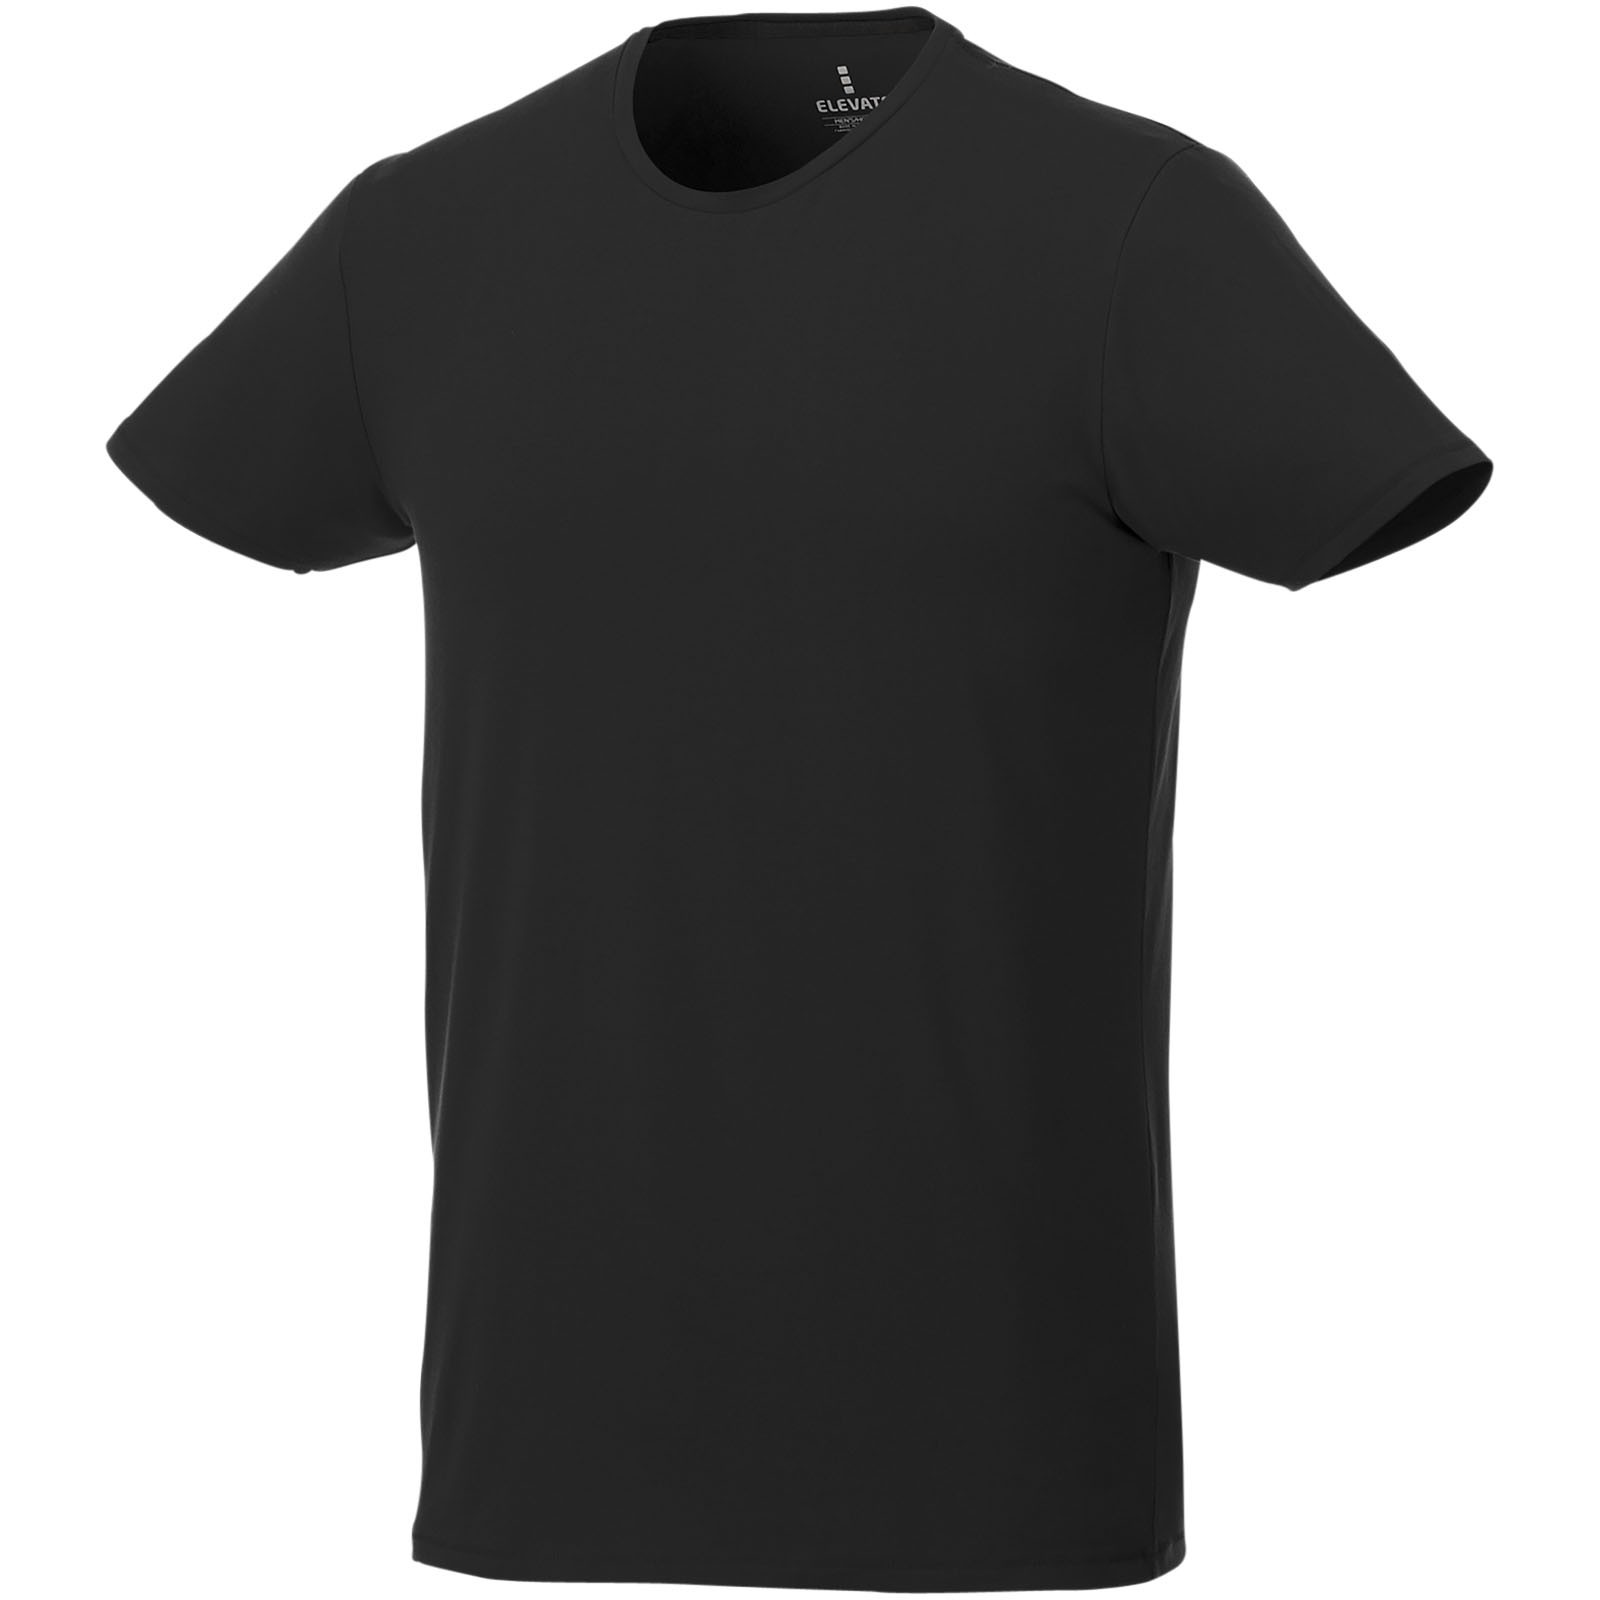 Balfour short sleeve men's GOTS organic t-shirt - Solid black / L